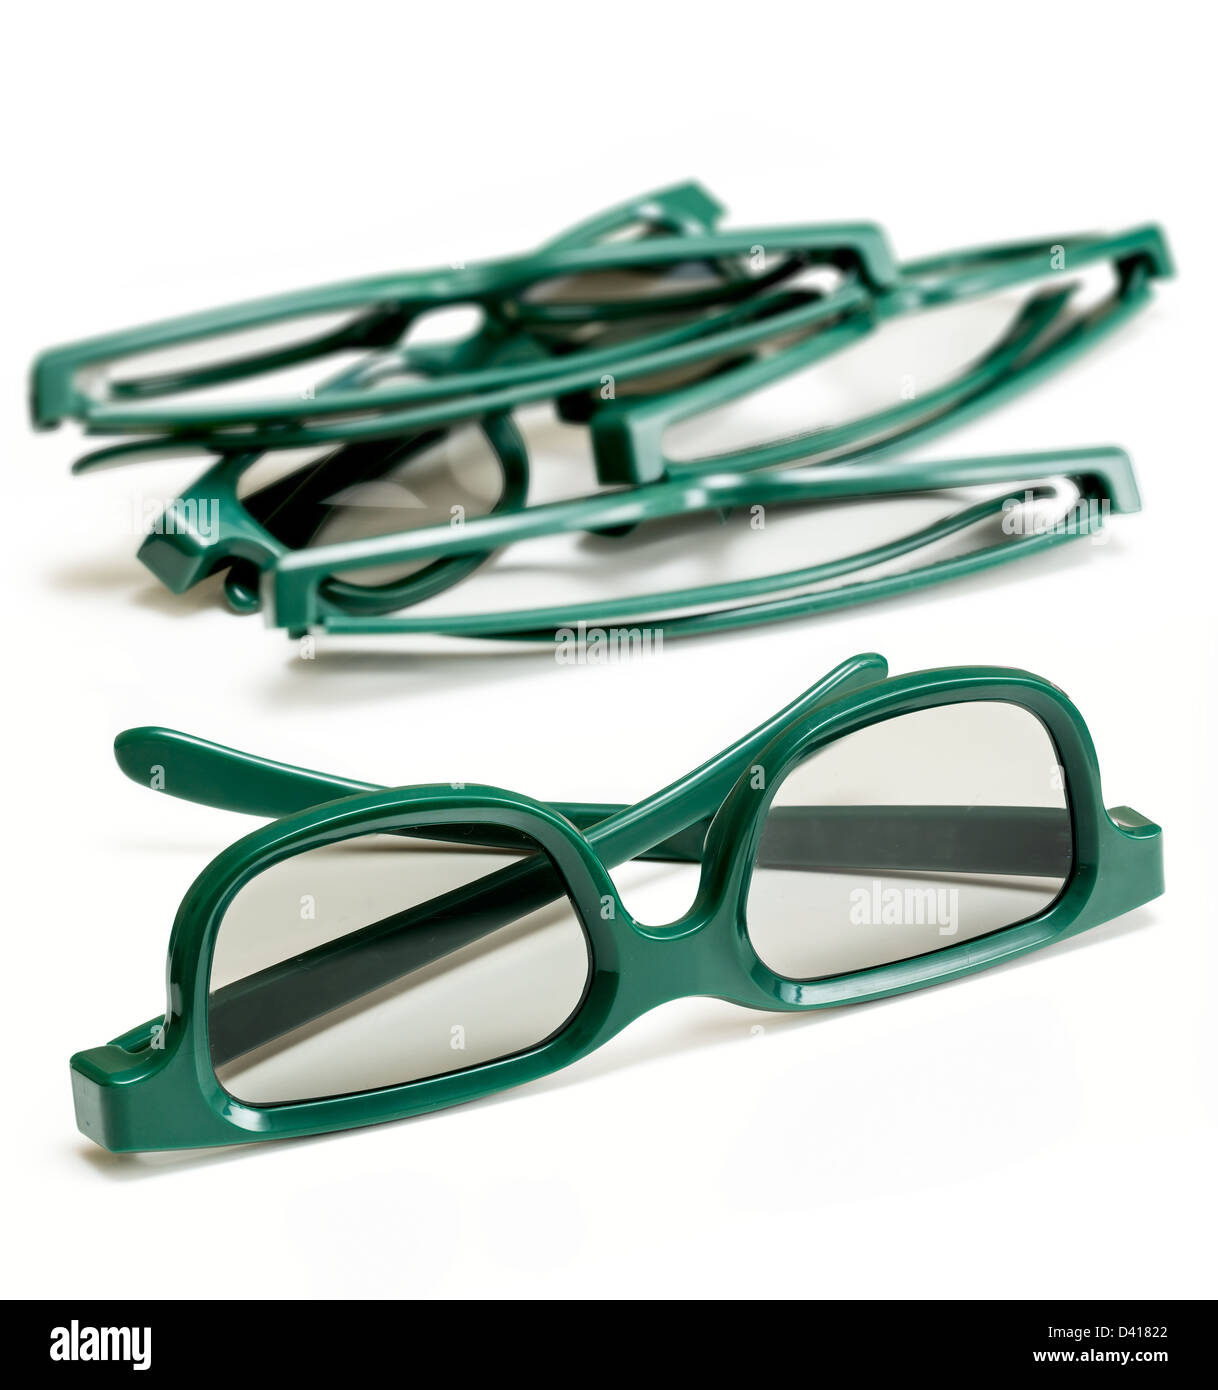 Pair of green 3d polarized glasses for watching 3-d movies in cinema isolated against white with stack of used specs - Stock Image